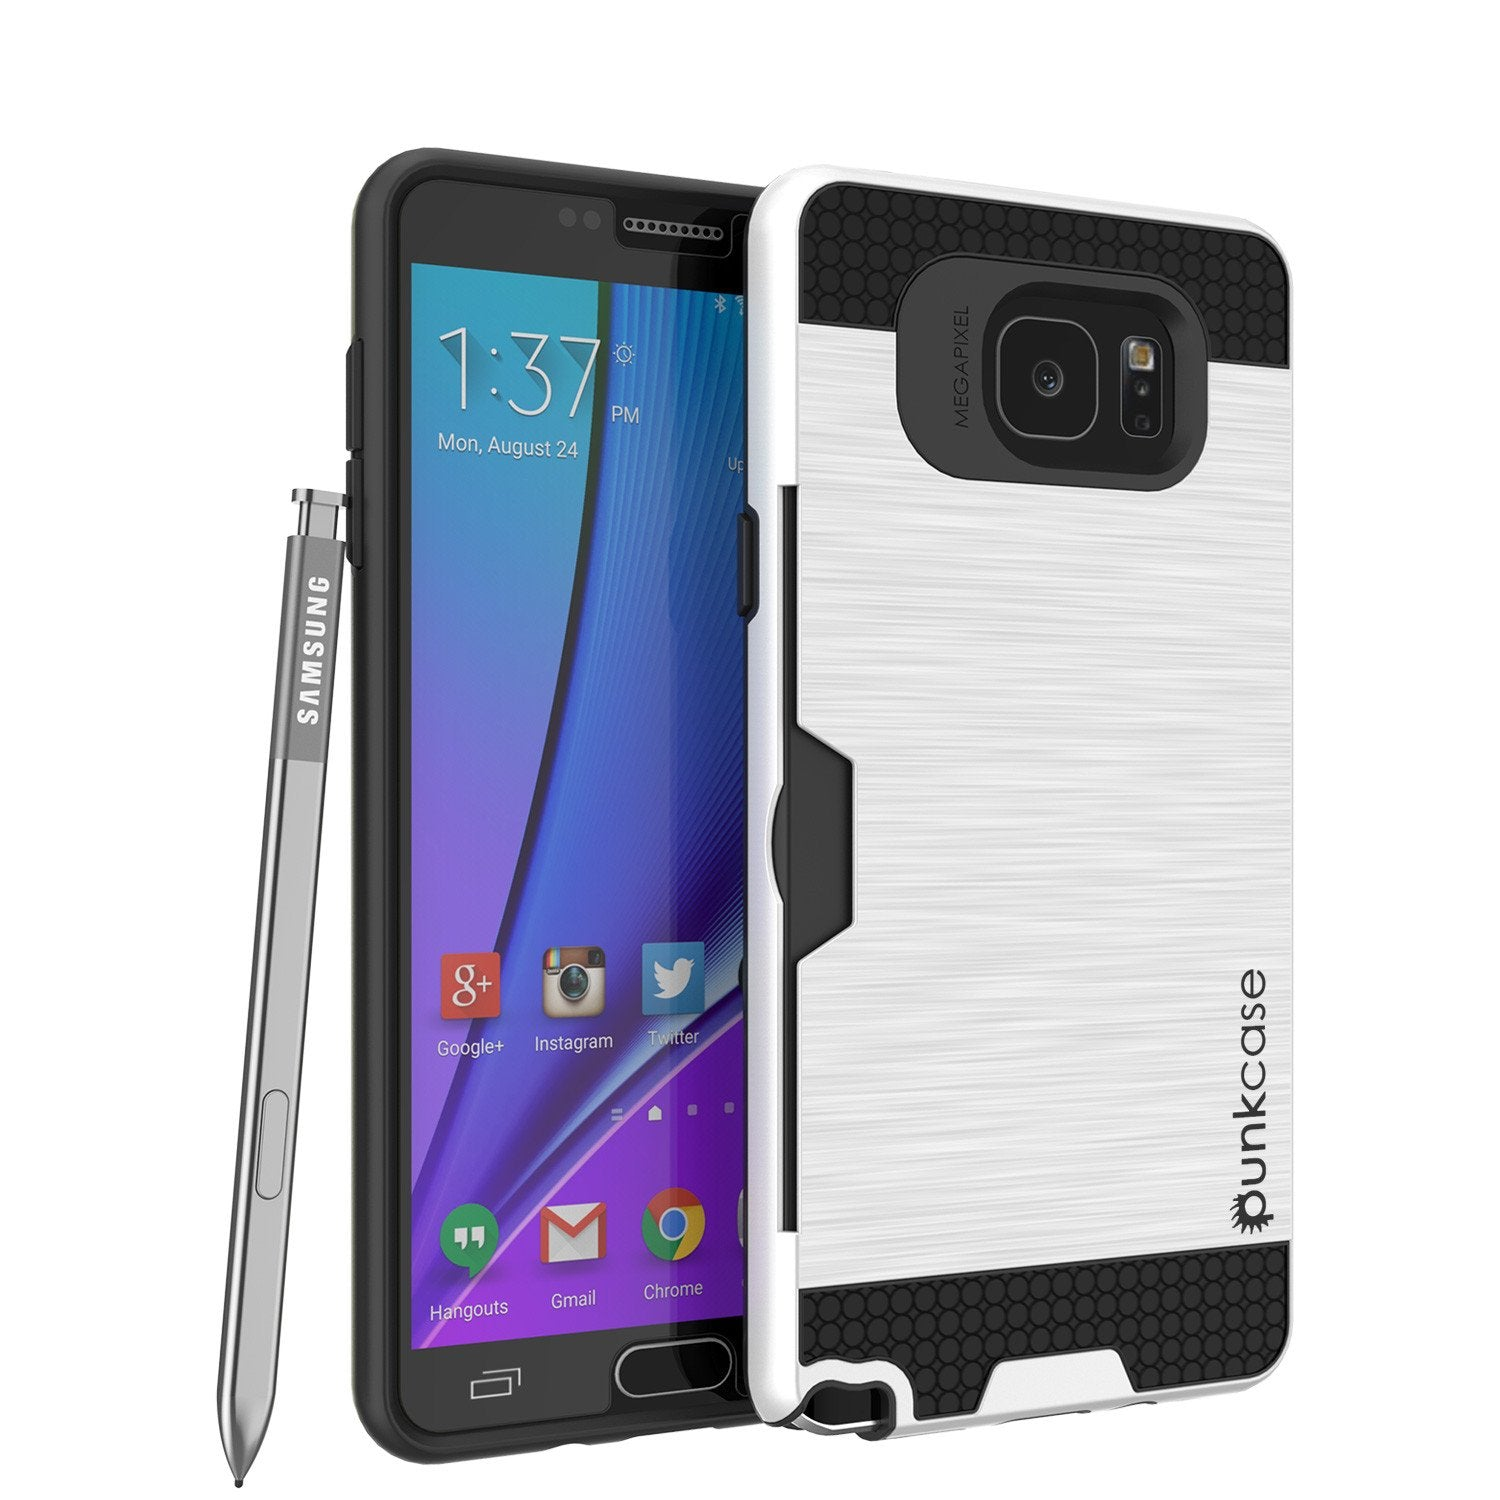 Galaxy Note 5 Case PunkCase SLOT White Series Slim Armor Soft Cover Case w/ Tempered Glass